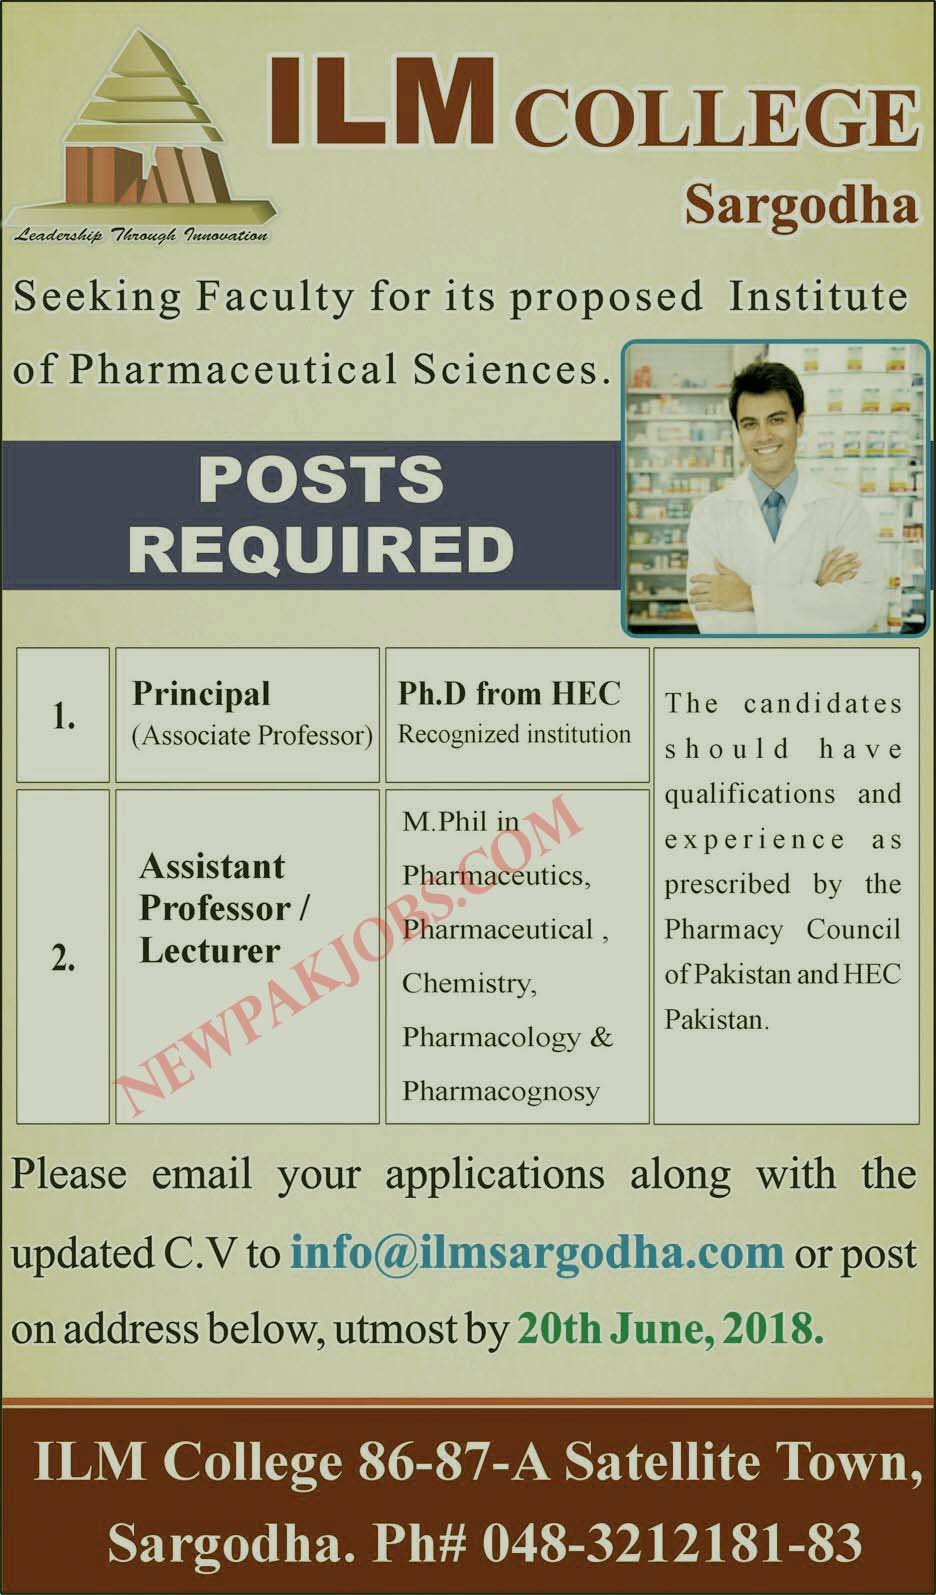 Latest Jobs in ILM College Sargodha Apply Through Email